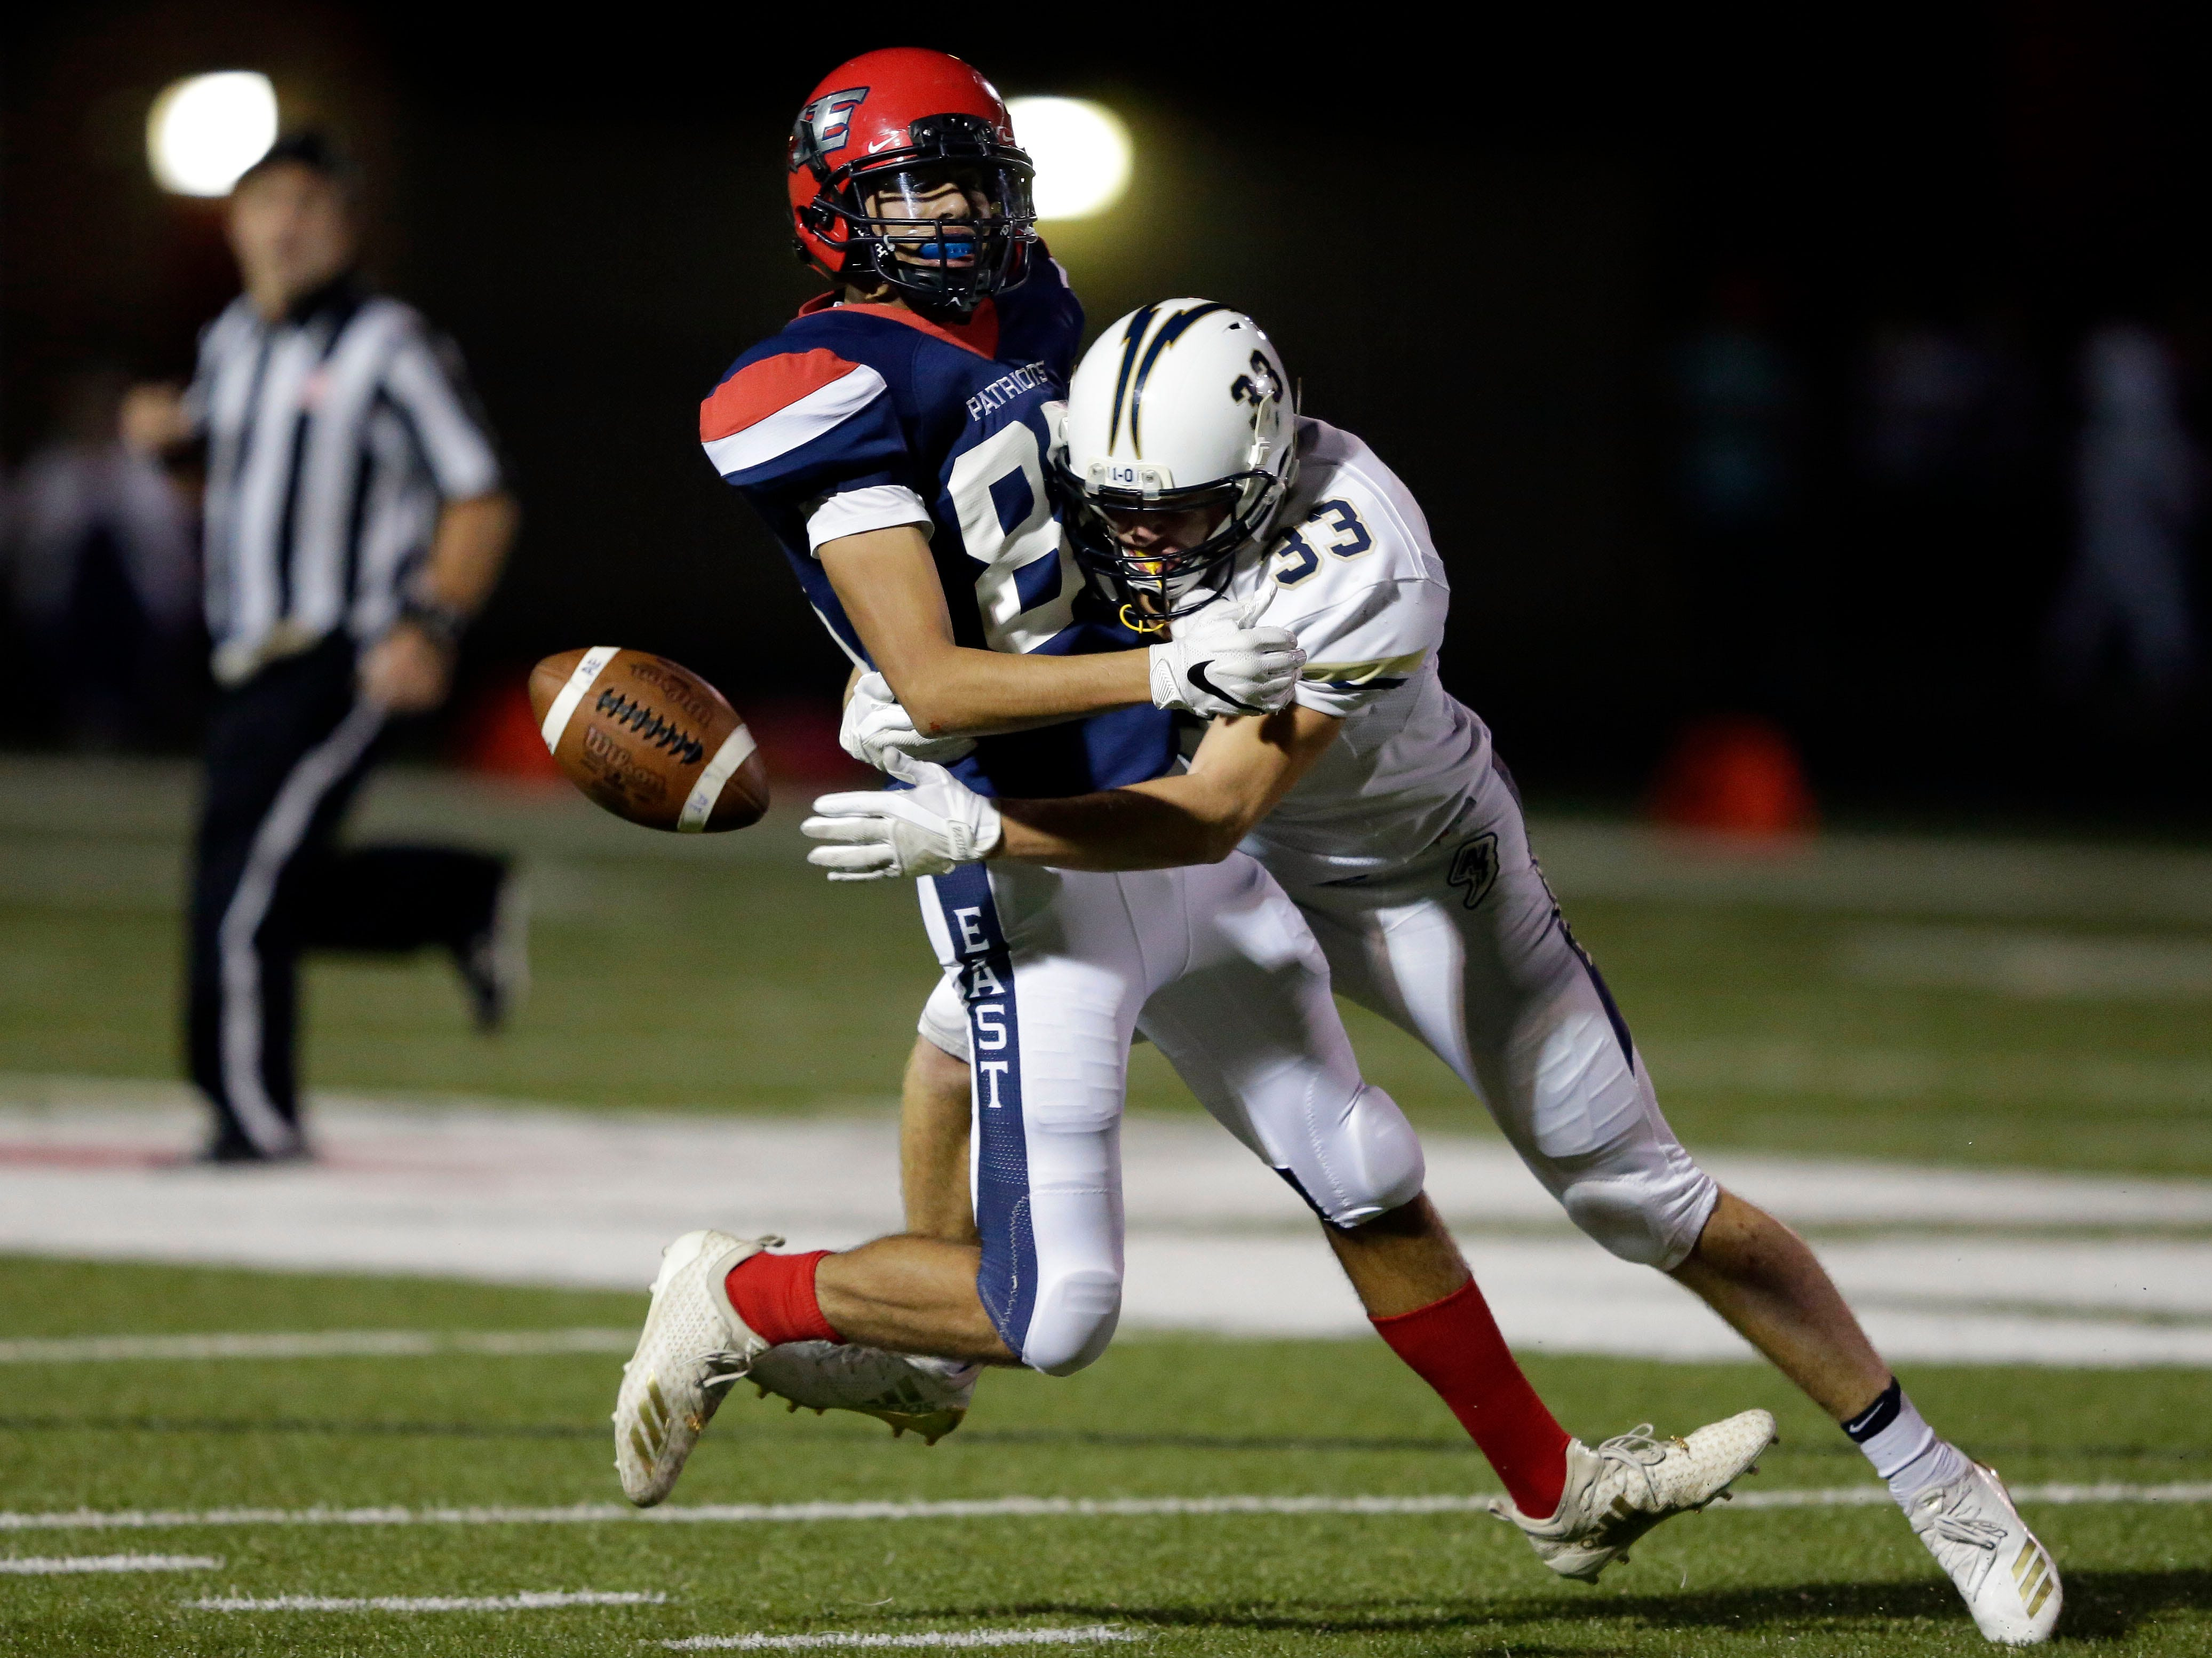 Mario Mendoza of Appleton East is tackled by Devin Blom of Appleton North as a pass falls incomplete in a Valley Football Association game Friday, September 14, 2018, at Appleton East High School in Appleton, Wis.Ron Page/USA TODAY NETWORK-Wisconsin